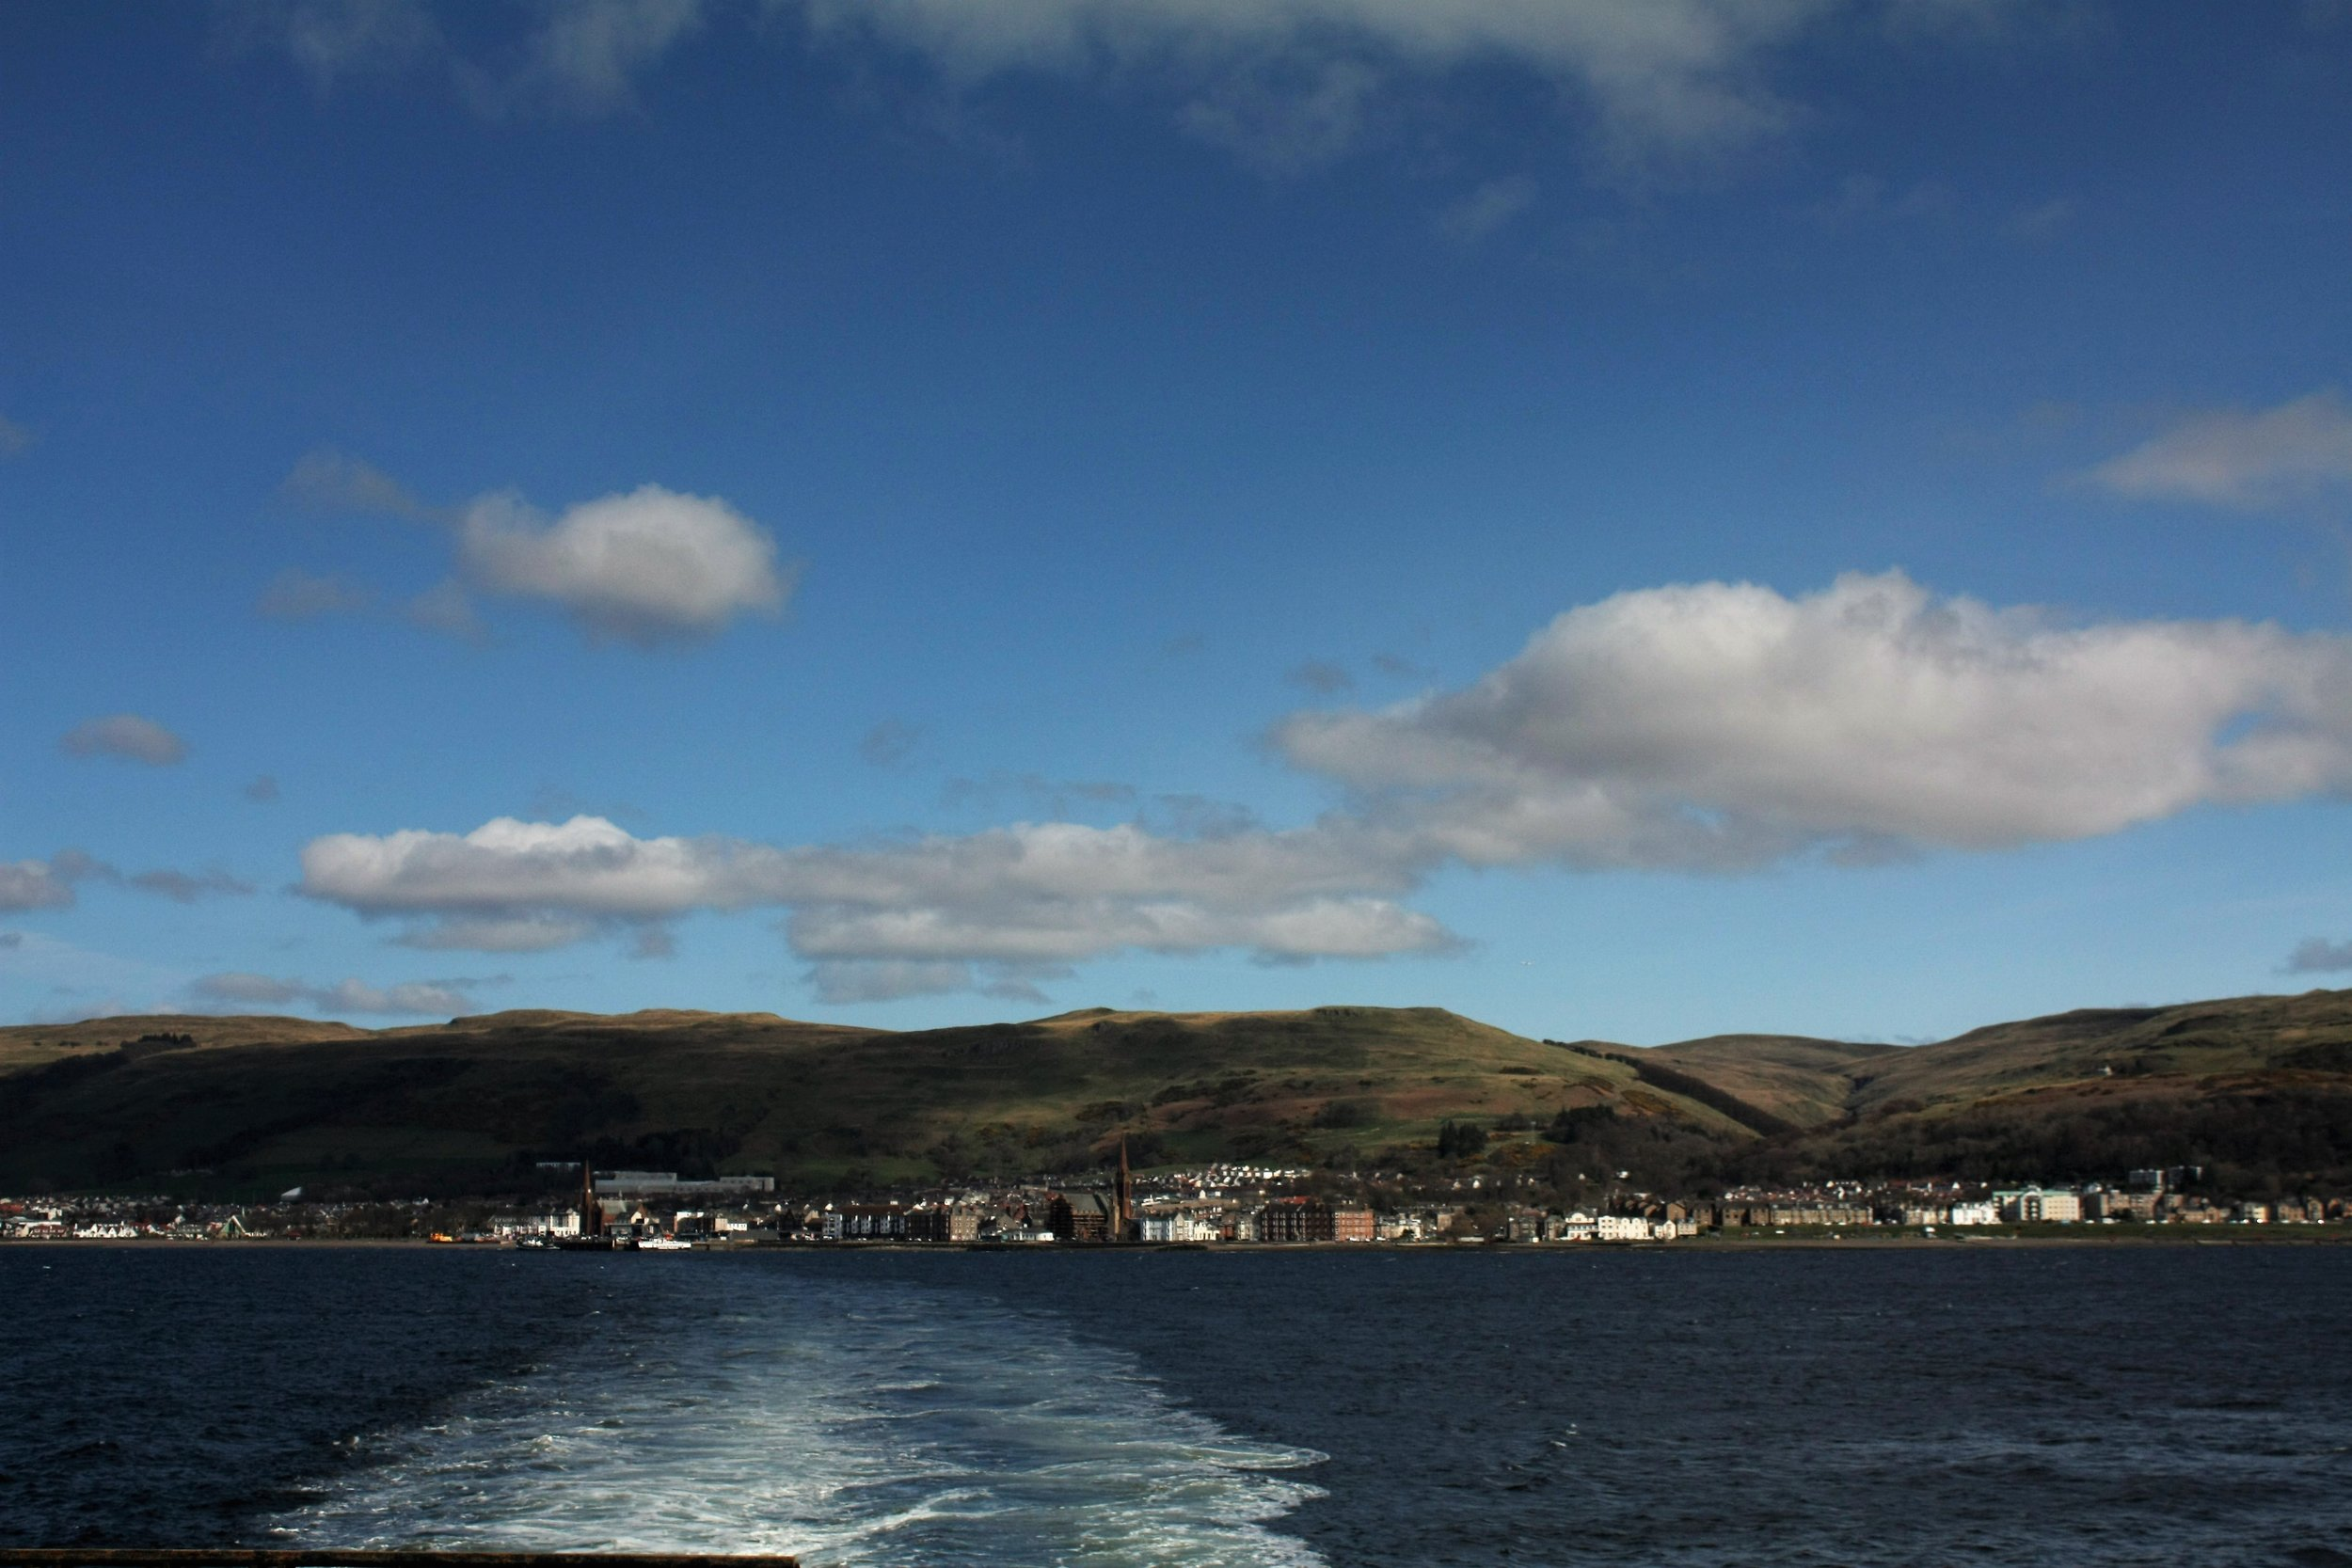 Views of Largs from the ferry to Cumbrae